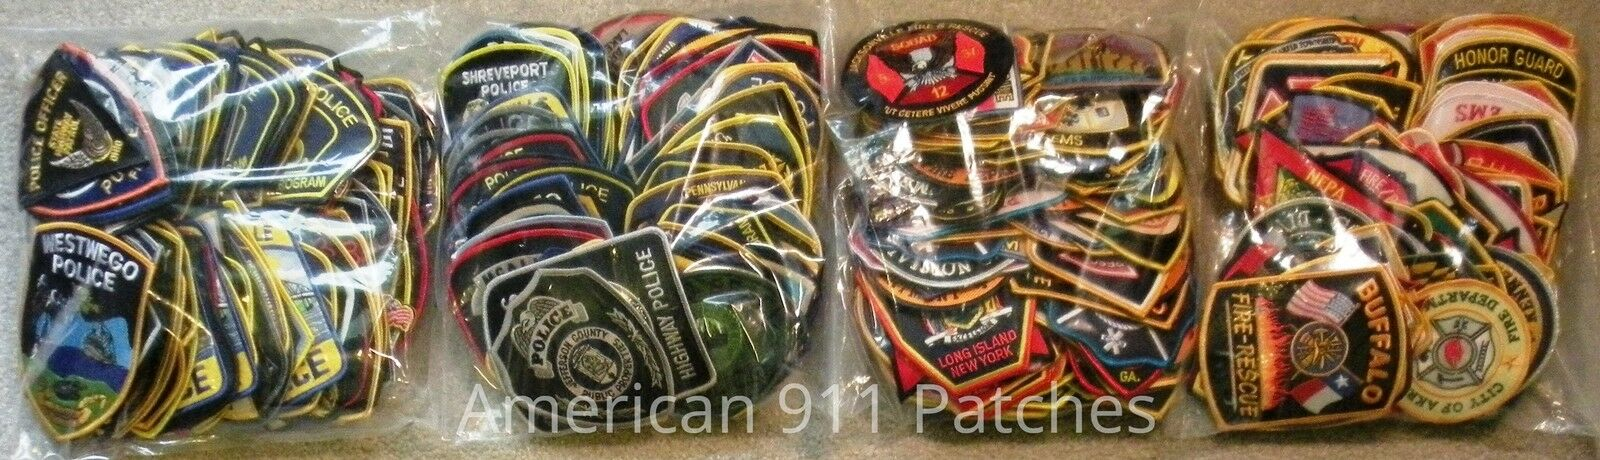 AMERICAN 911 PATCHES